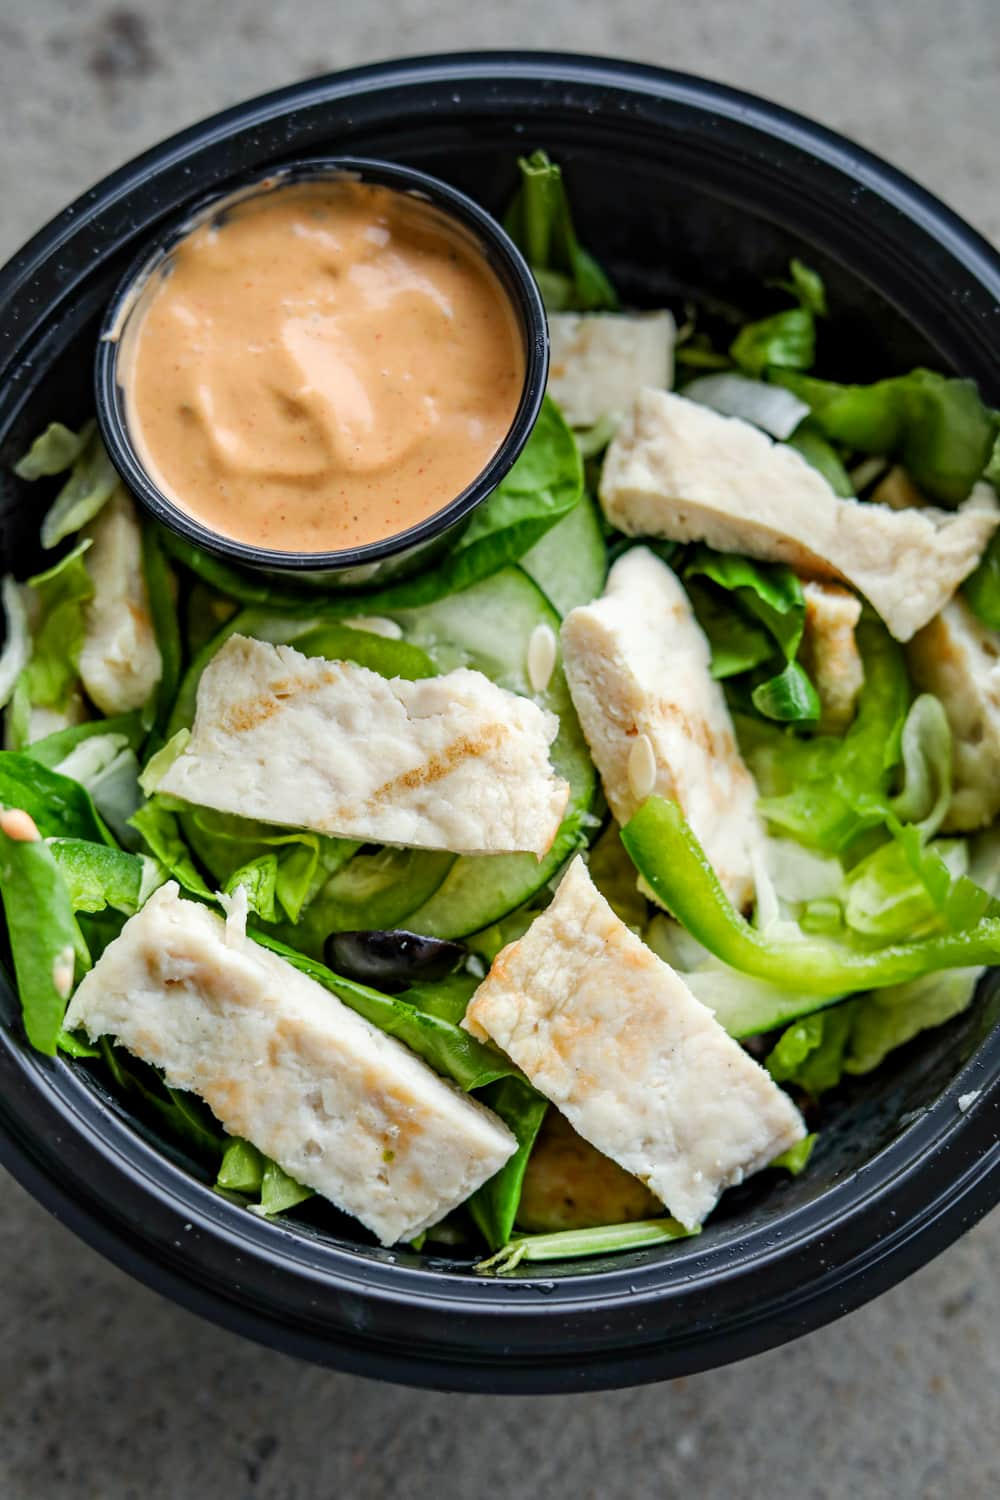 A black bowl filled with vegetables, a cup of orange dipping sauce, and cut up chicken.